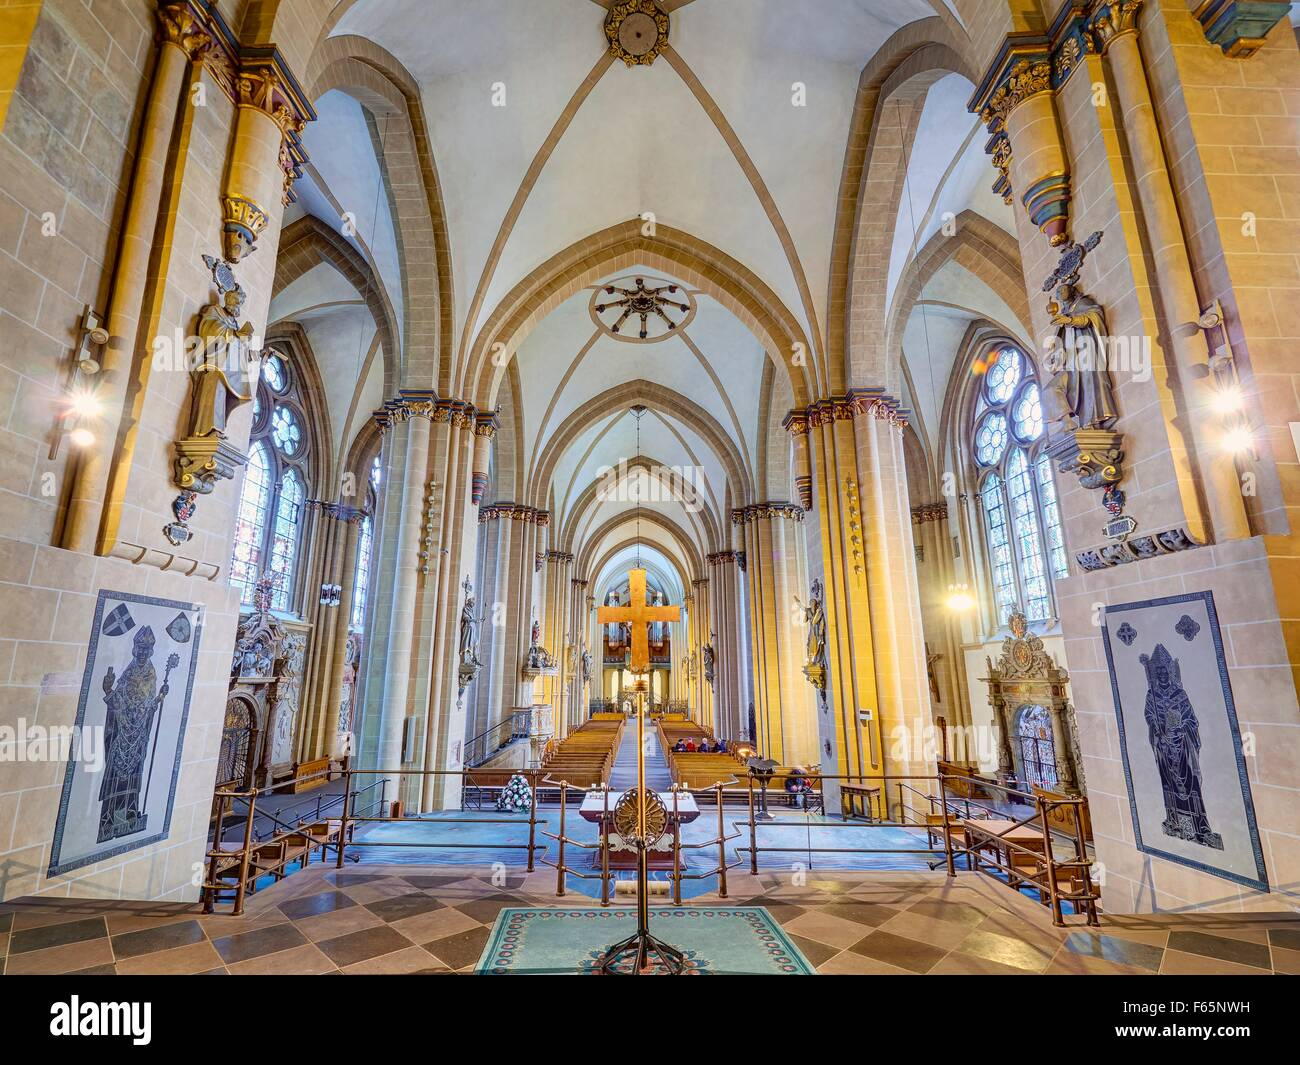 The imposing nave of the Paderborn Cathedral - Stock Image